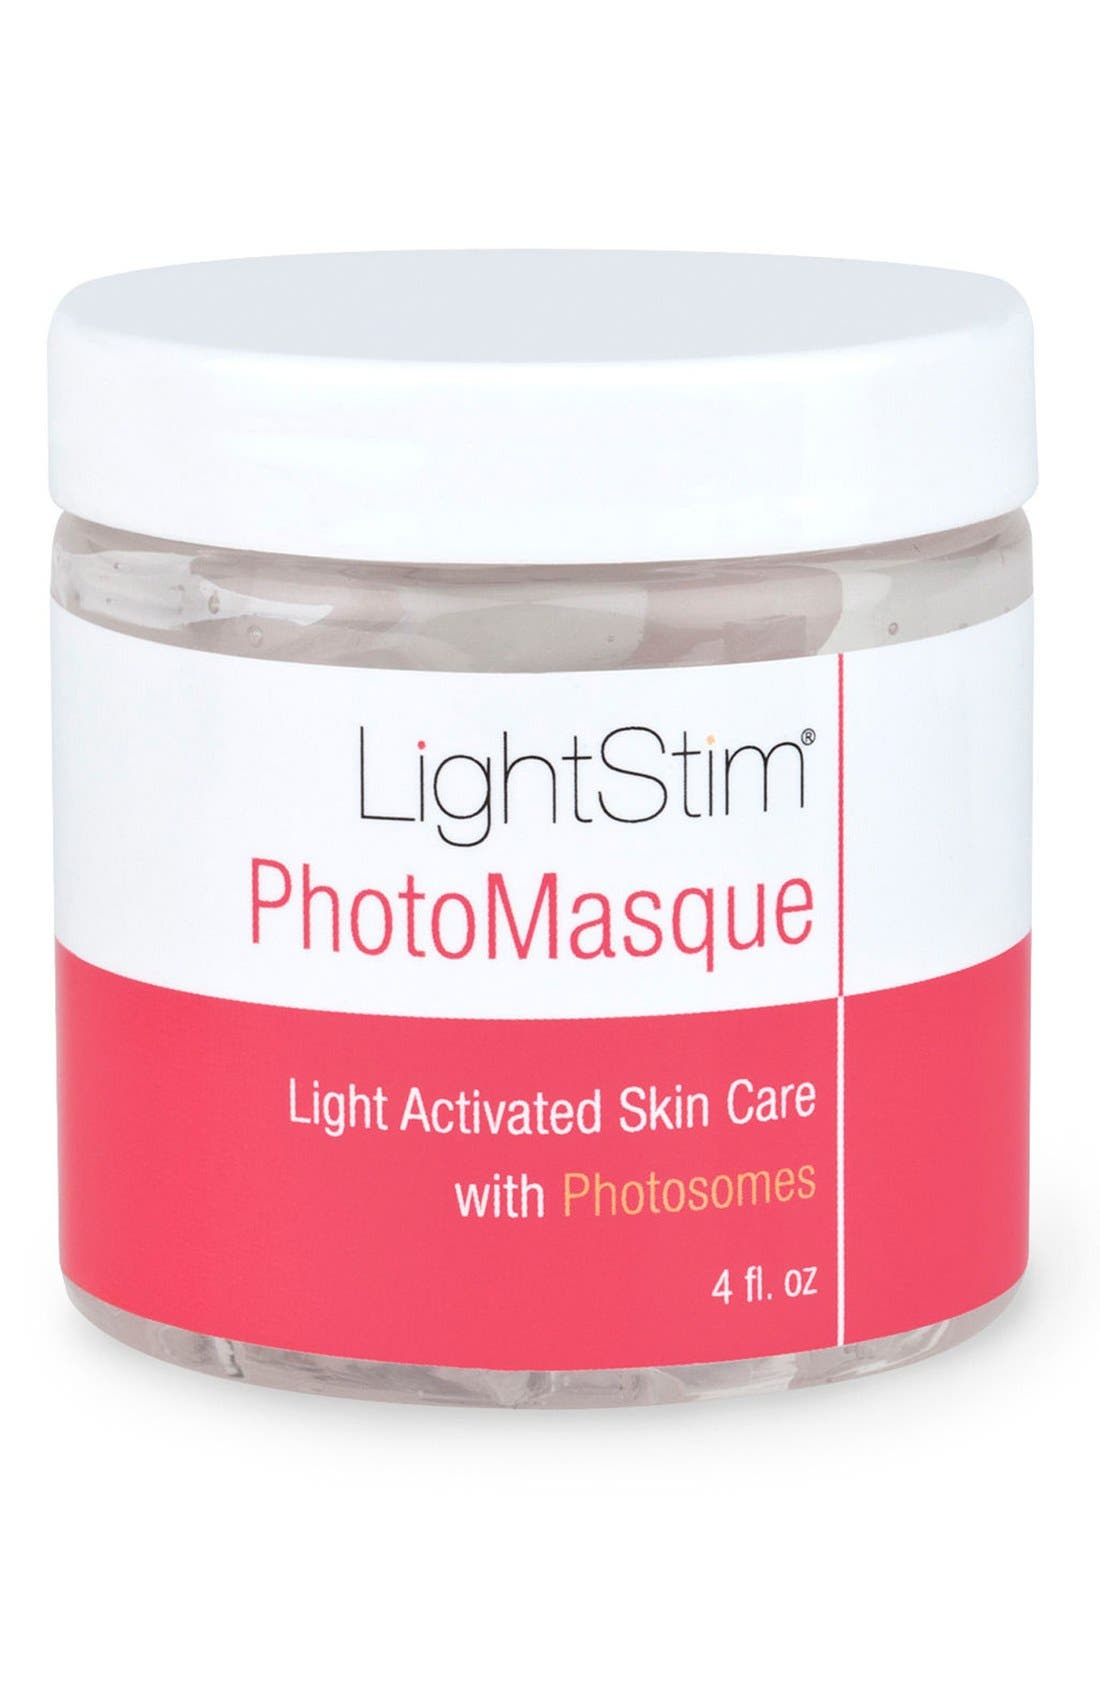 LightStim PhotoMasque Light Activated Skin Care